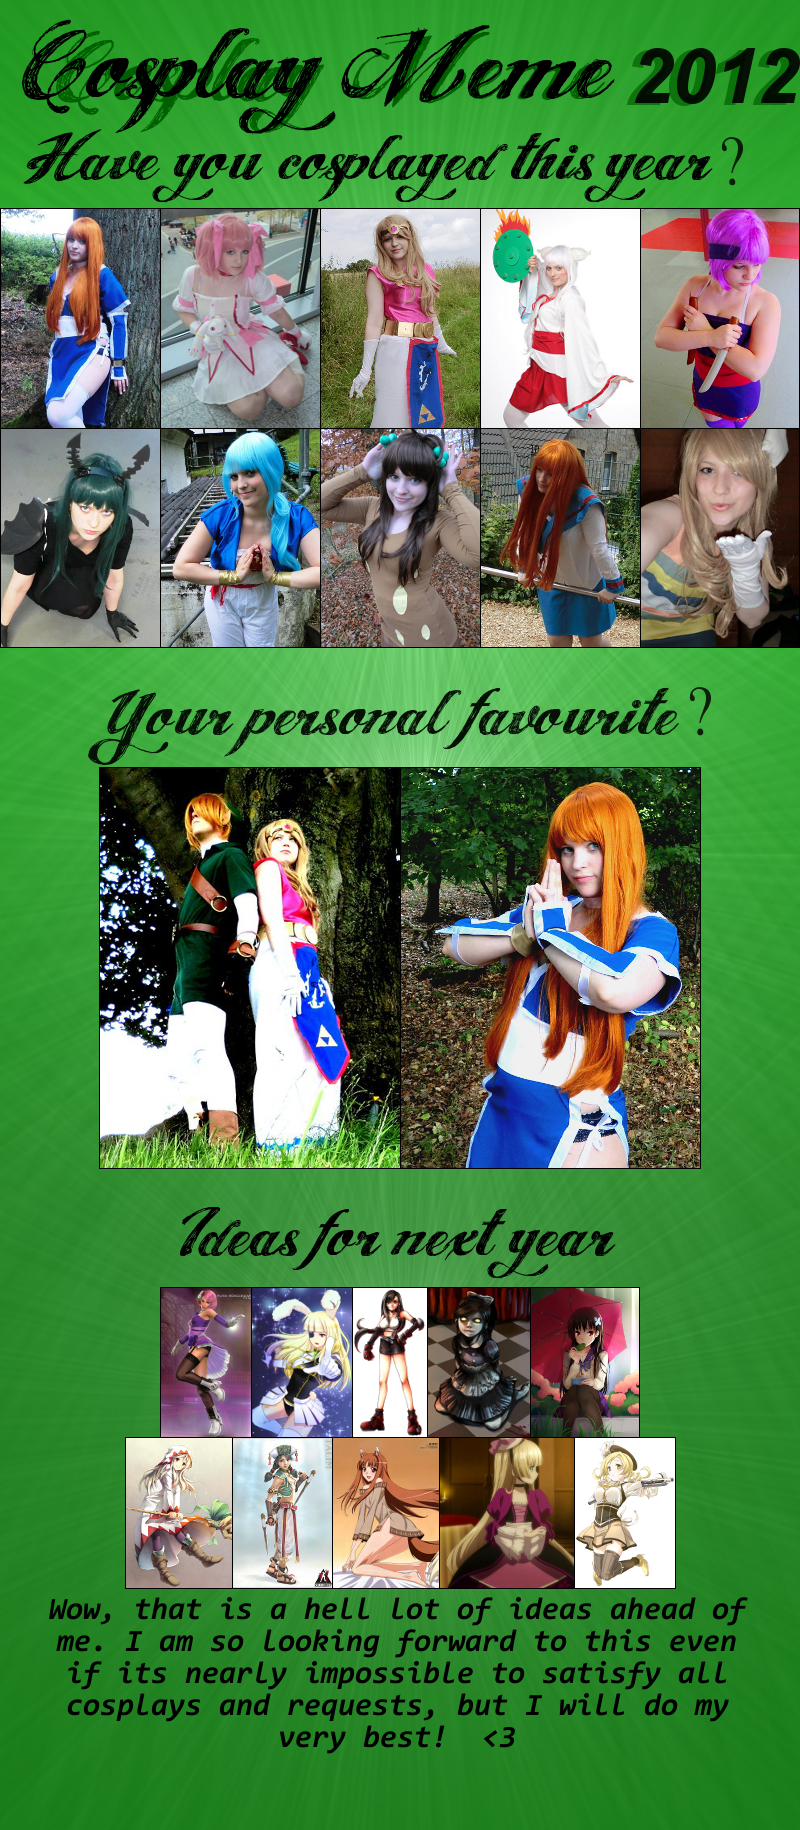 Cosplay Meme 2012 by Bellaju